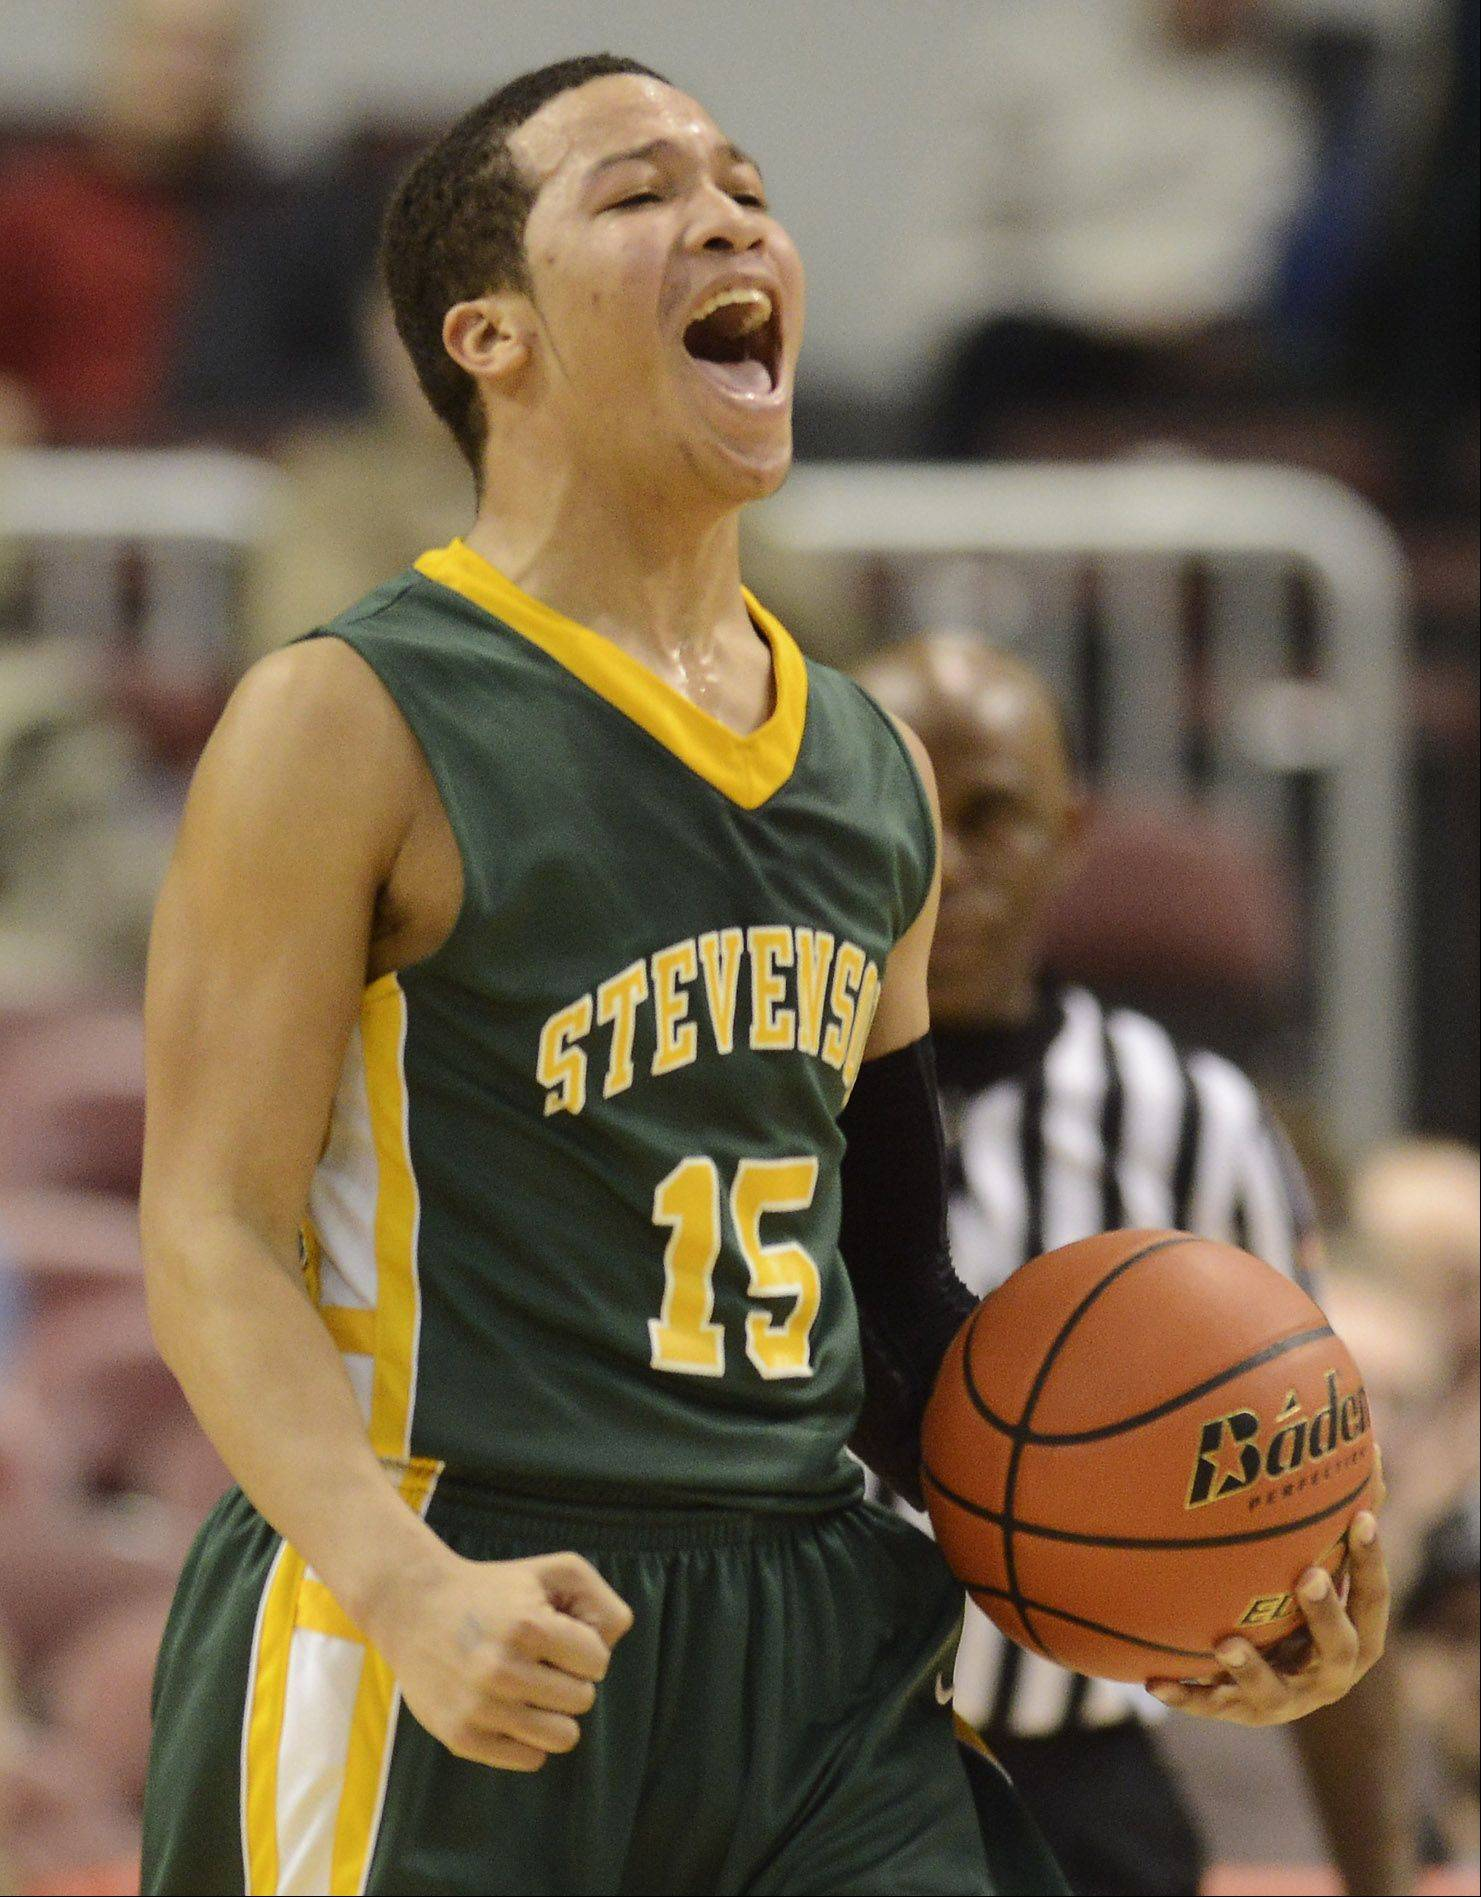 Stevenson's Jalen Brunson lets out a shout as his team closes in on a victory over Edwardsville during the Class 4A boys basketball state semifinals at Carver Arena in Peoria on Friday.